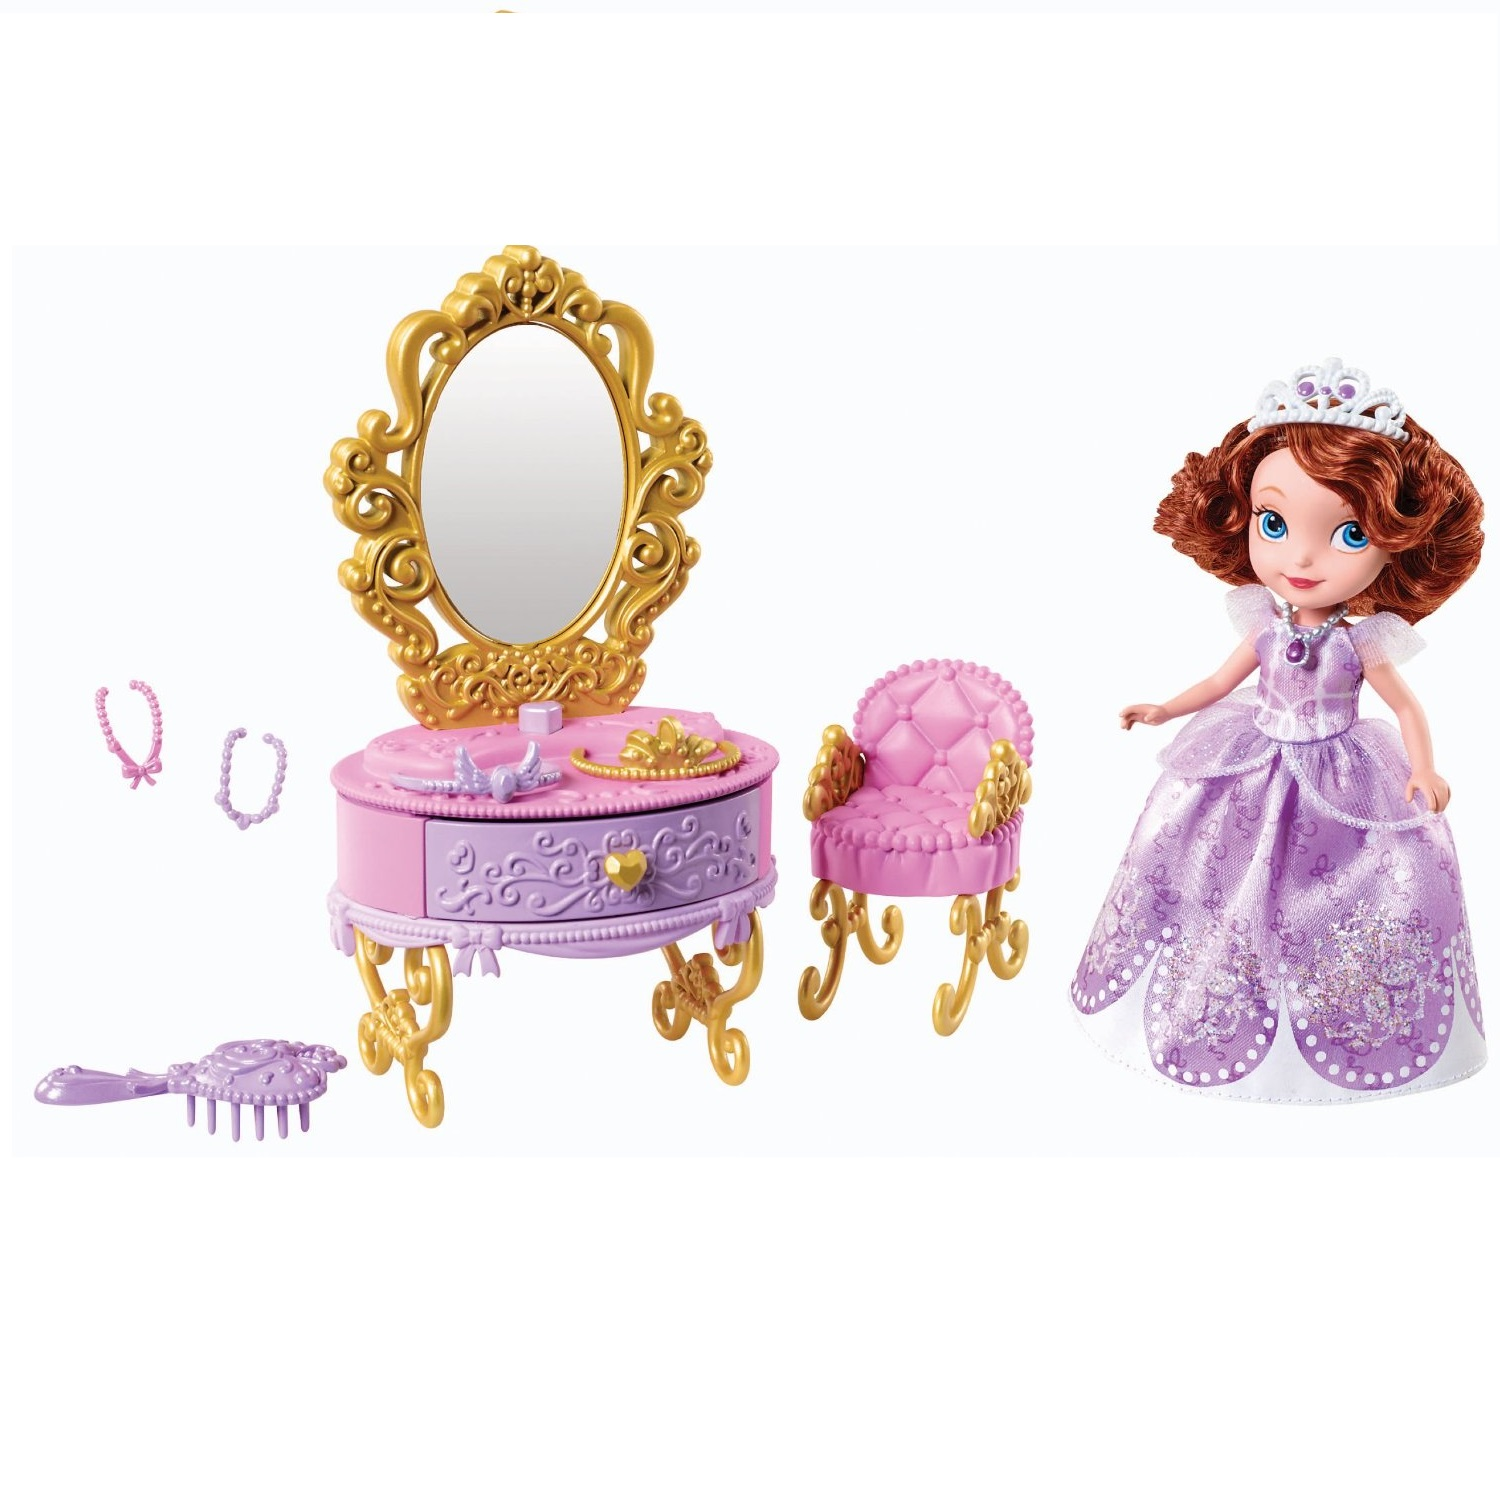 Bộ đồ chơi Công chúa Disney Sofia The First Ready for The Ball Royal Vanity